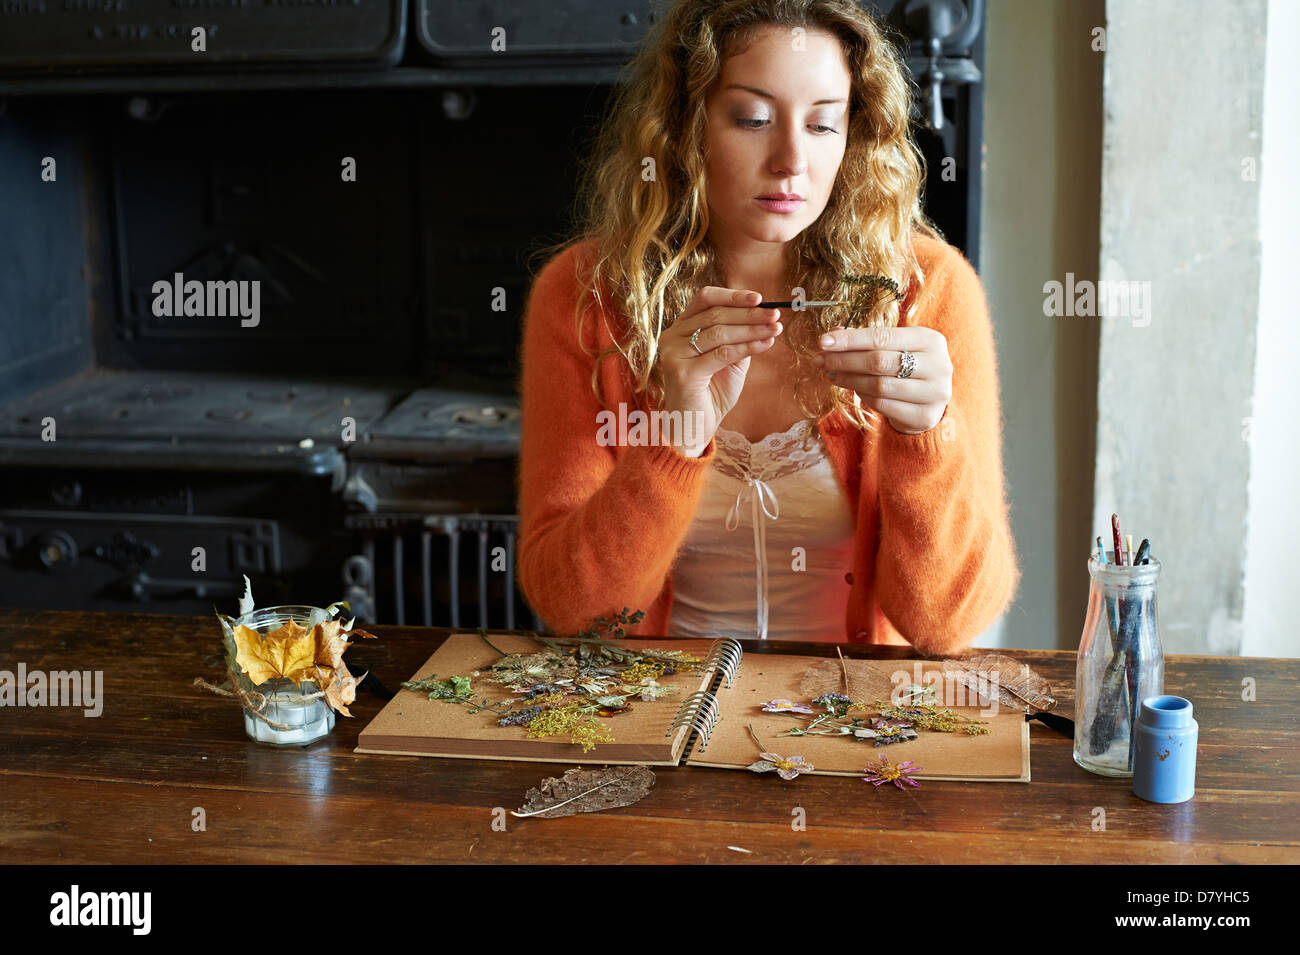 Woman decorating dried herbs and flowers - Stock Image